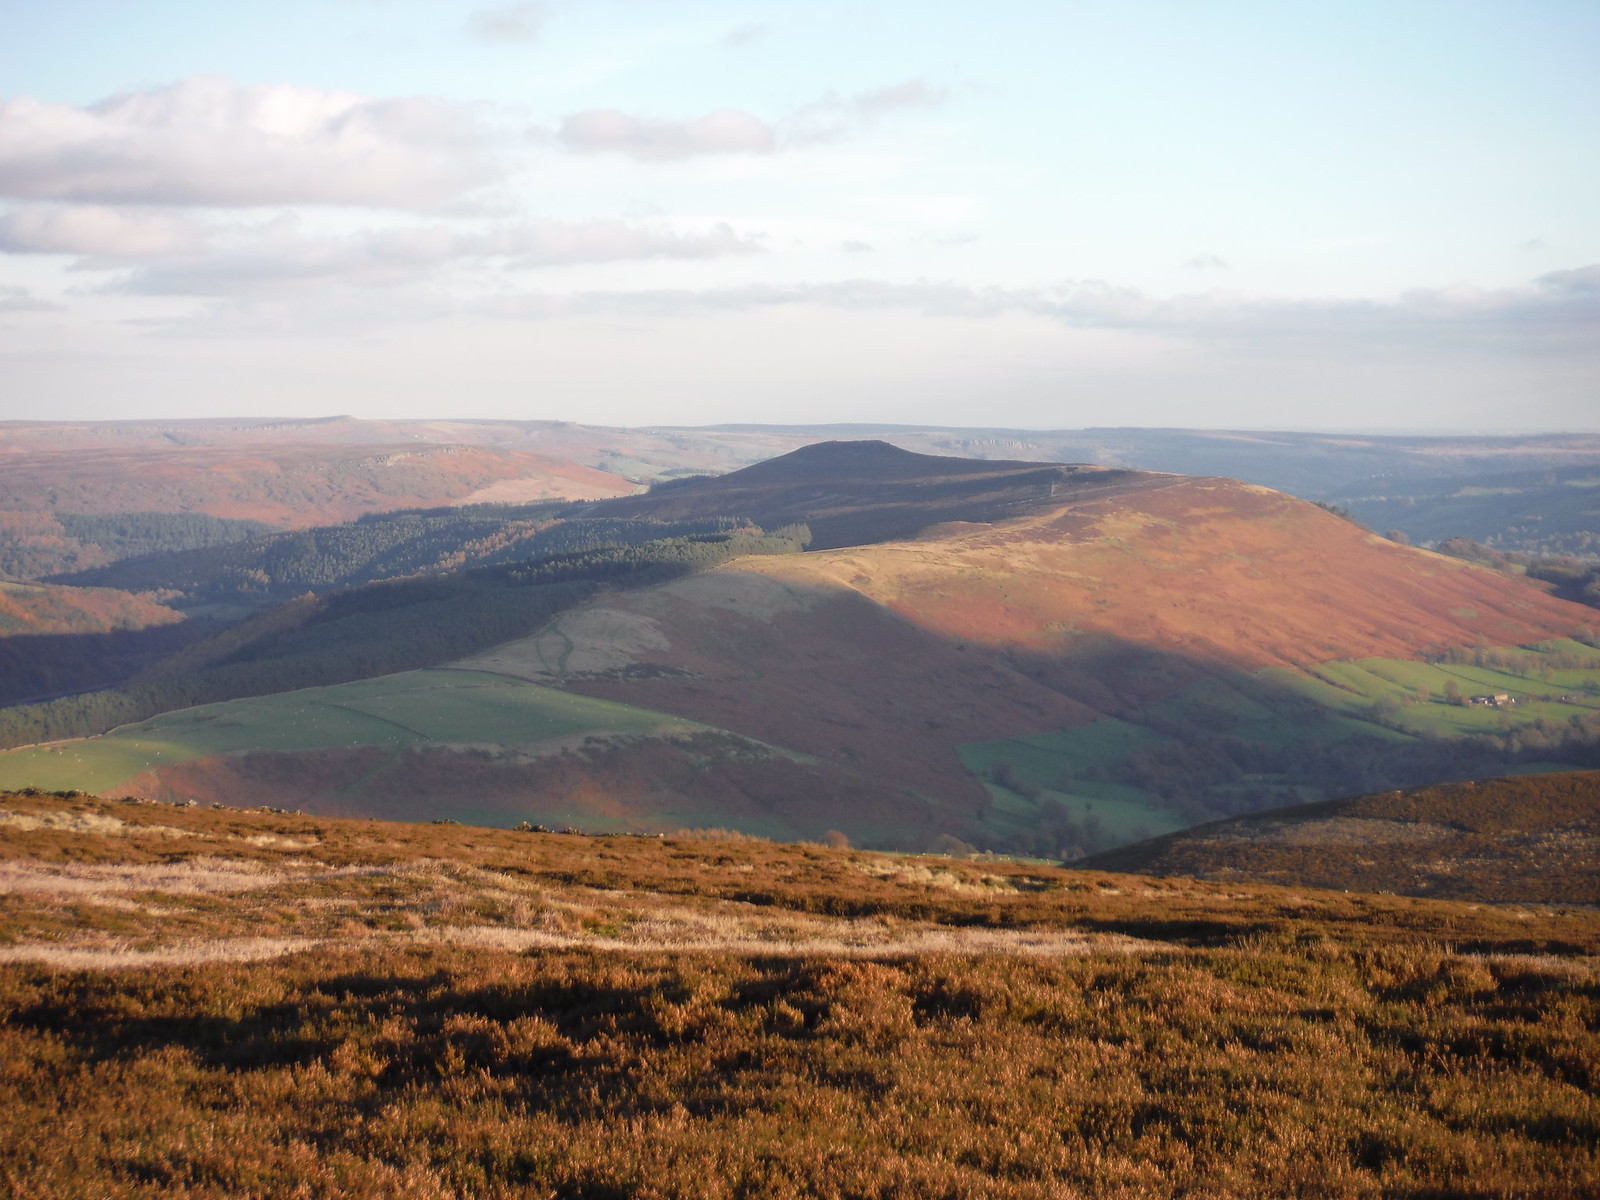 Wooler Knoll and Win Hill